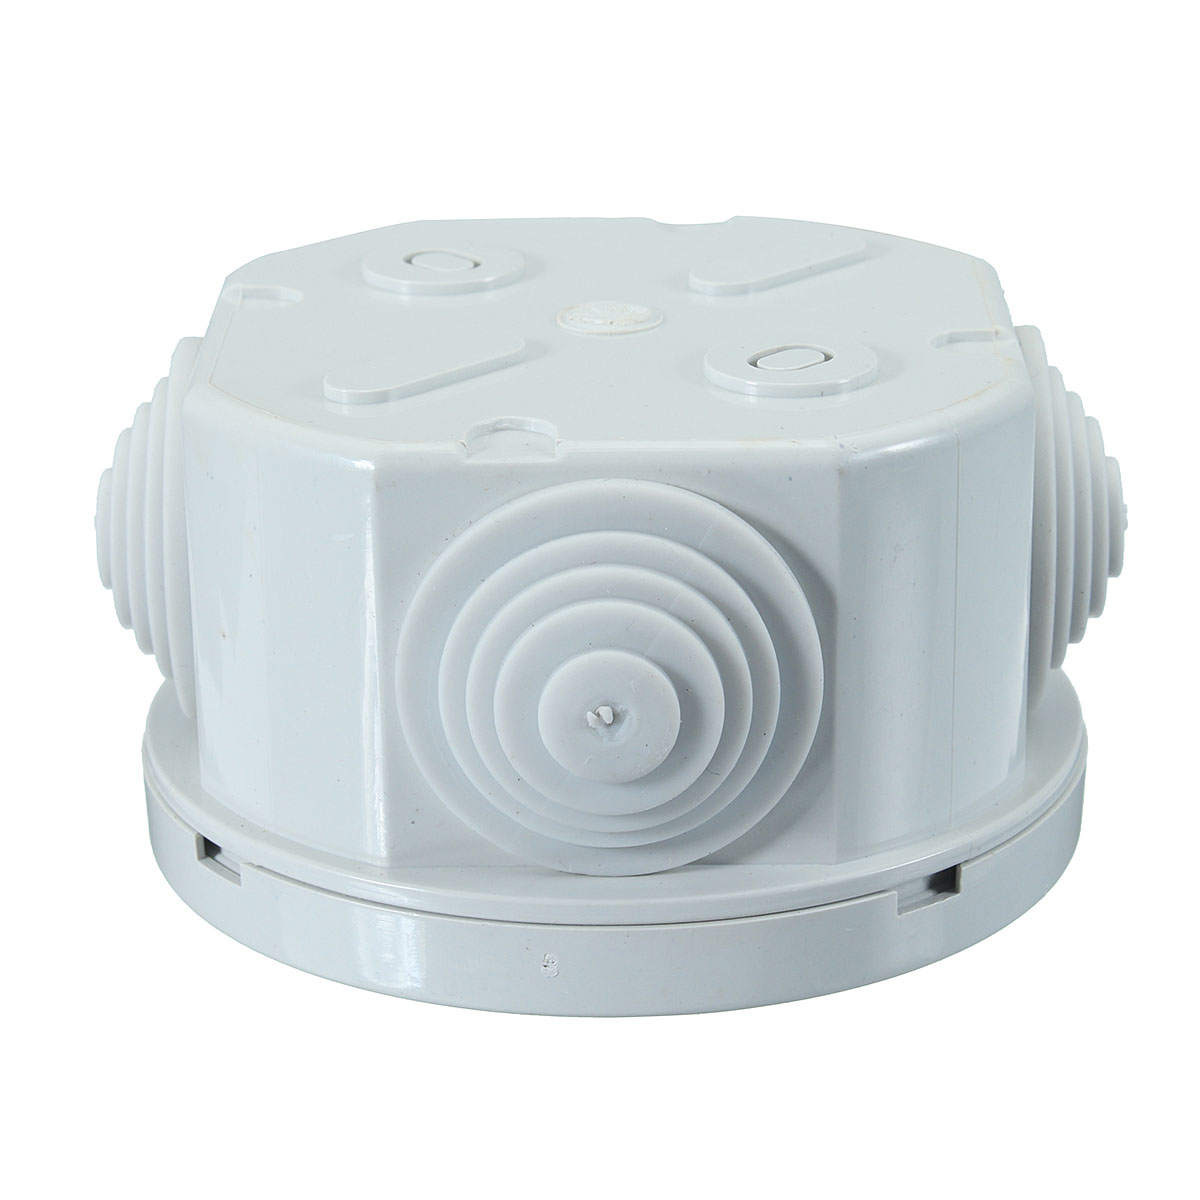 Aliexpress.com : Buy 65mm x 35mm Round Electric IP66 Junction Box ...